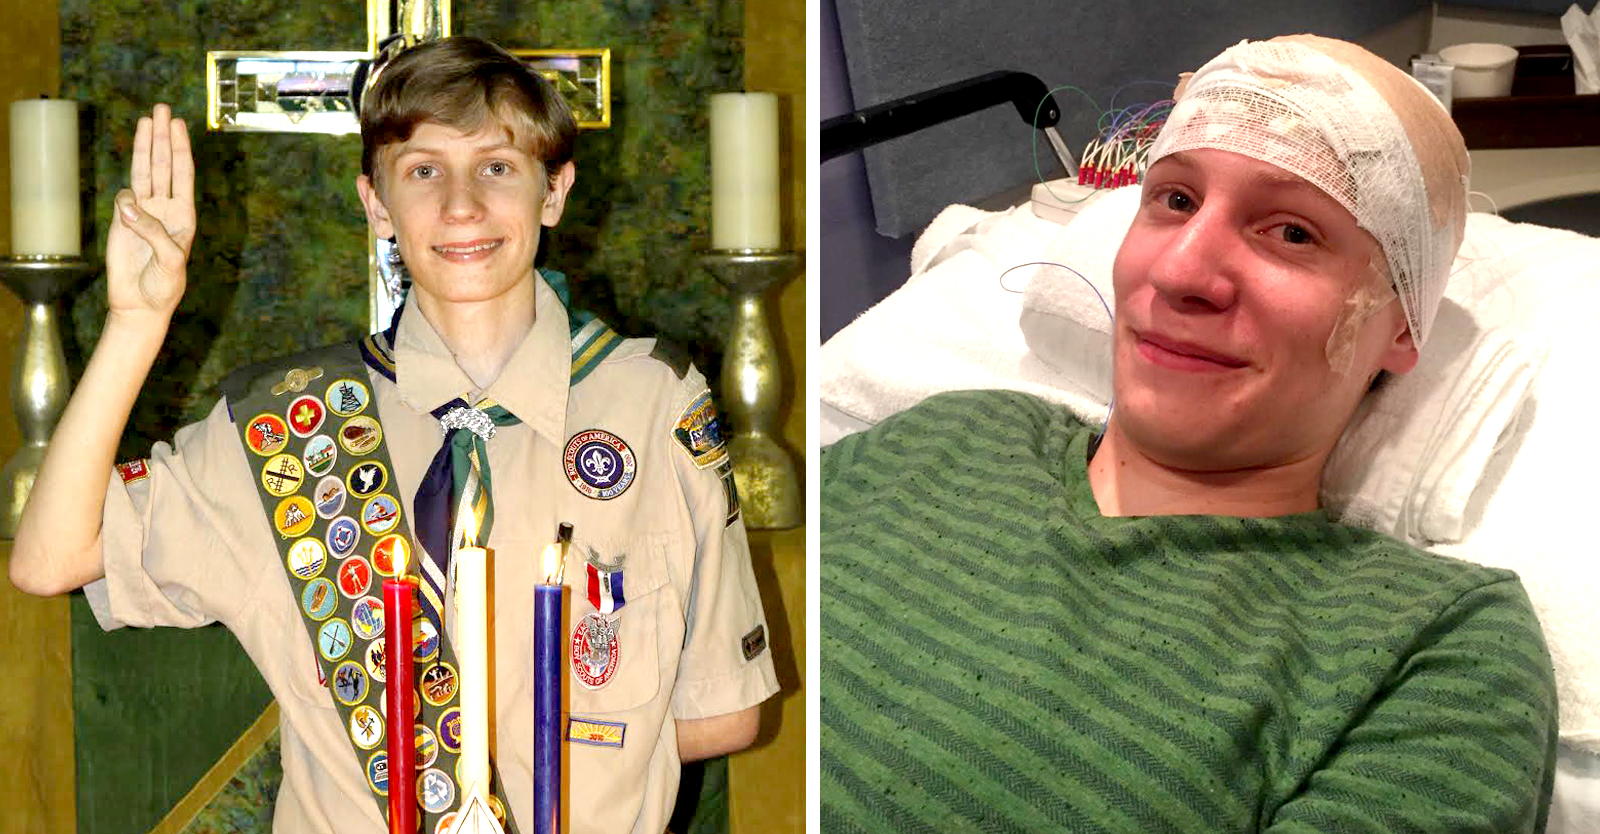 eagle-scout-sues-merck,-alleges-gardasil-hpv-vaccine-destroyed-his-life-•-children's-health-defense